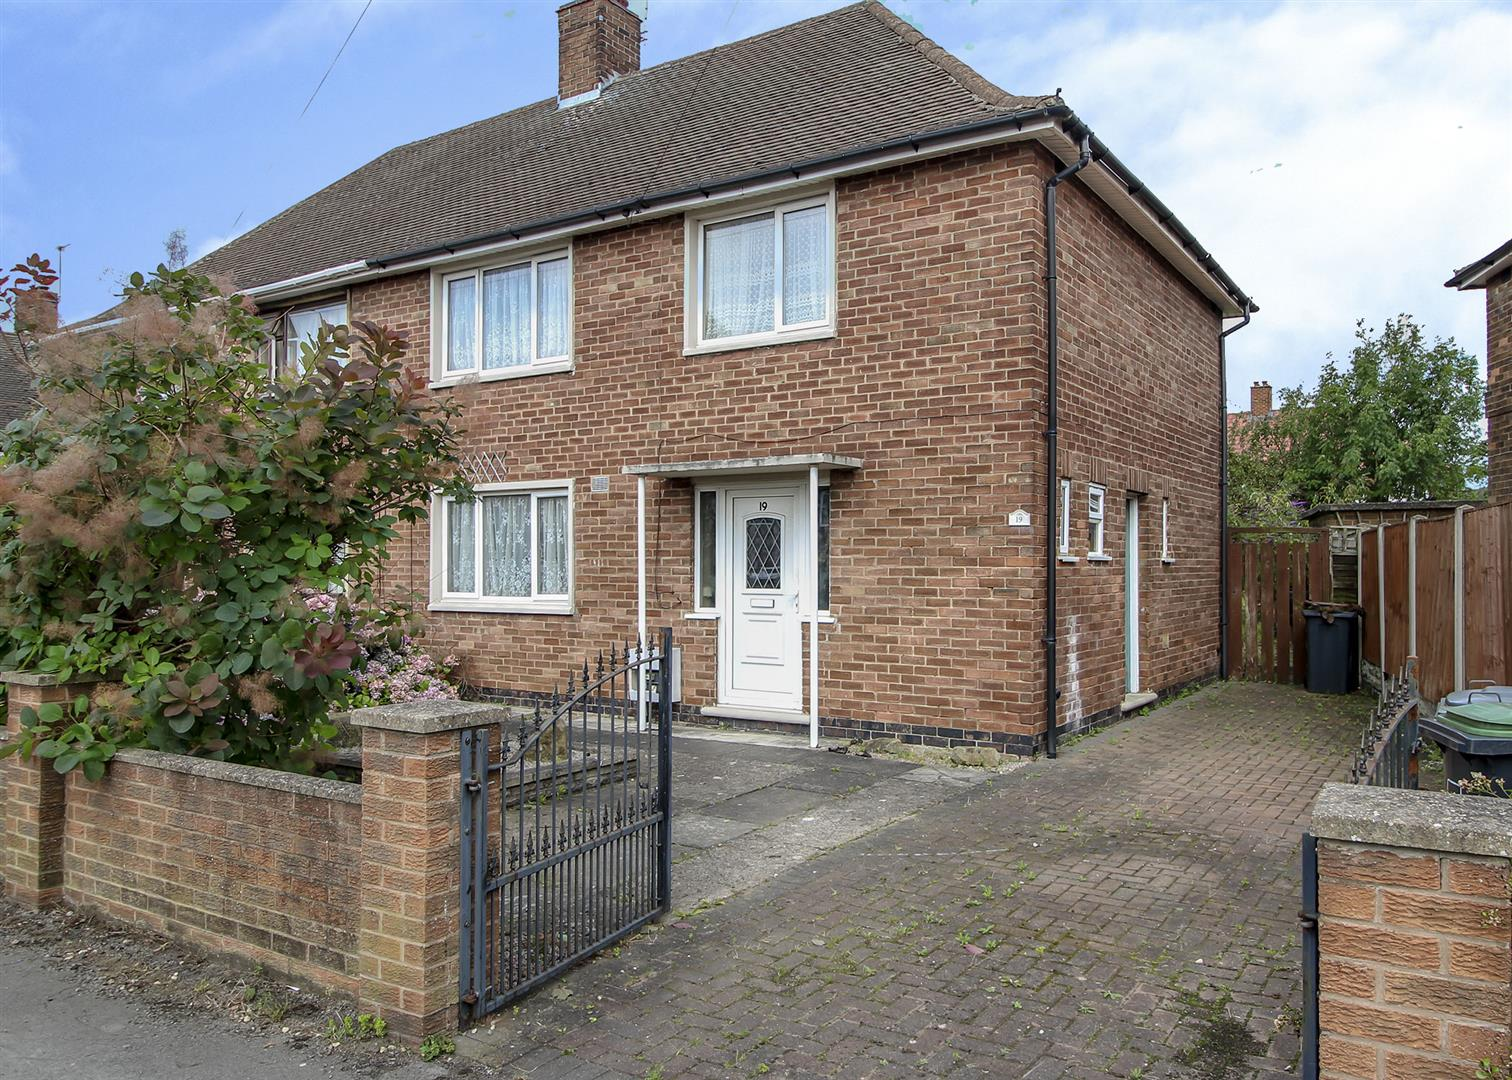 3 Bedrooms Semi Detached House for sale in Wellspring Dale, Stapleford